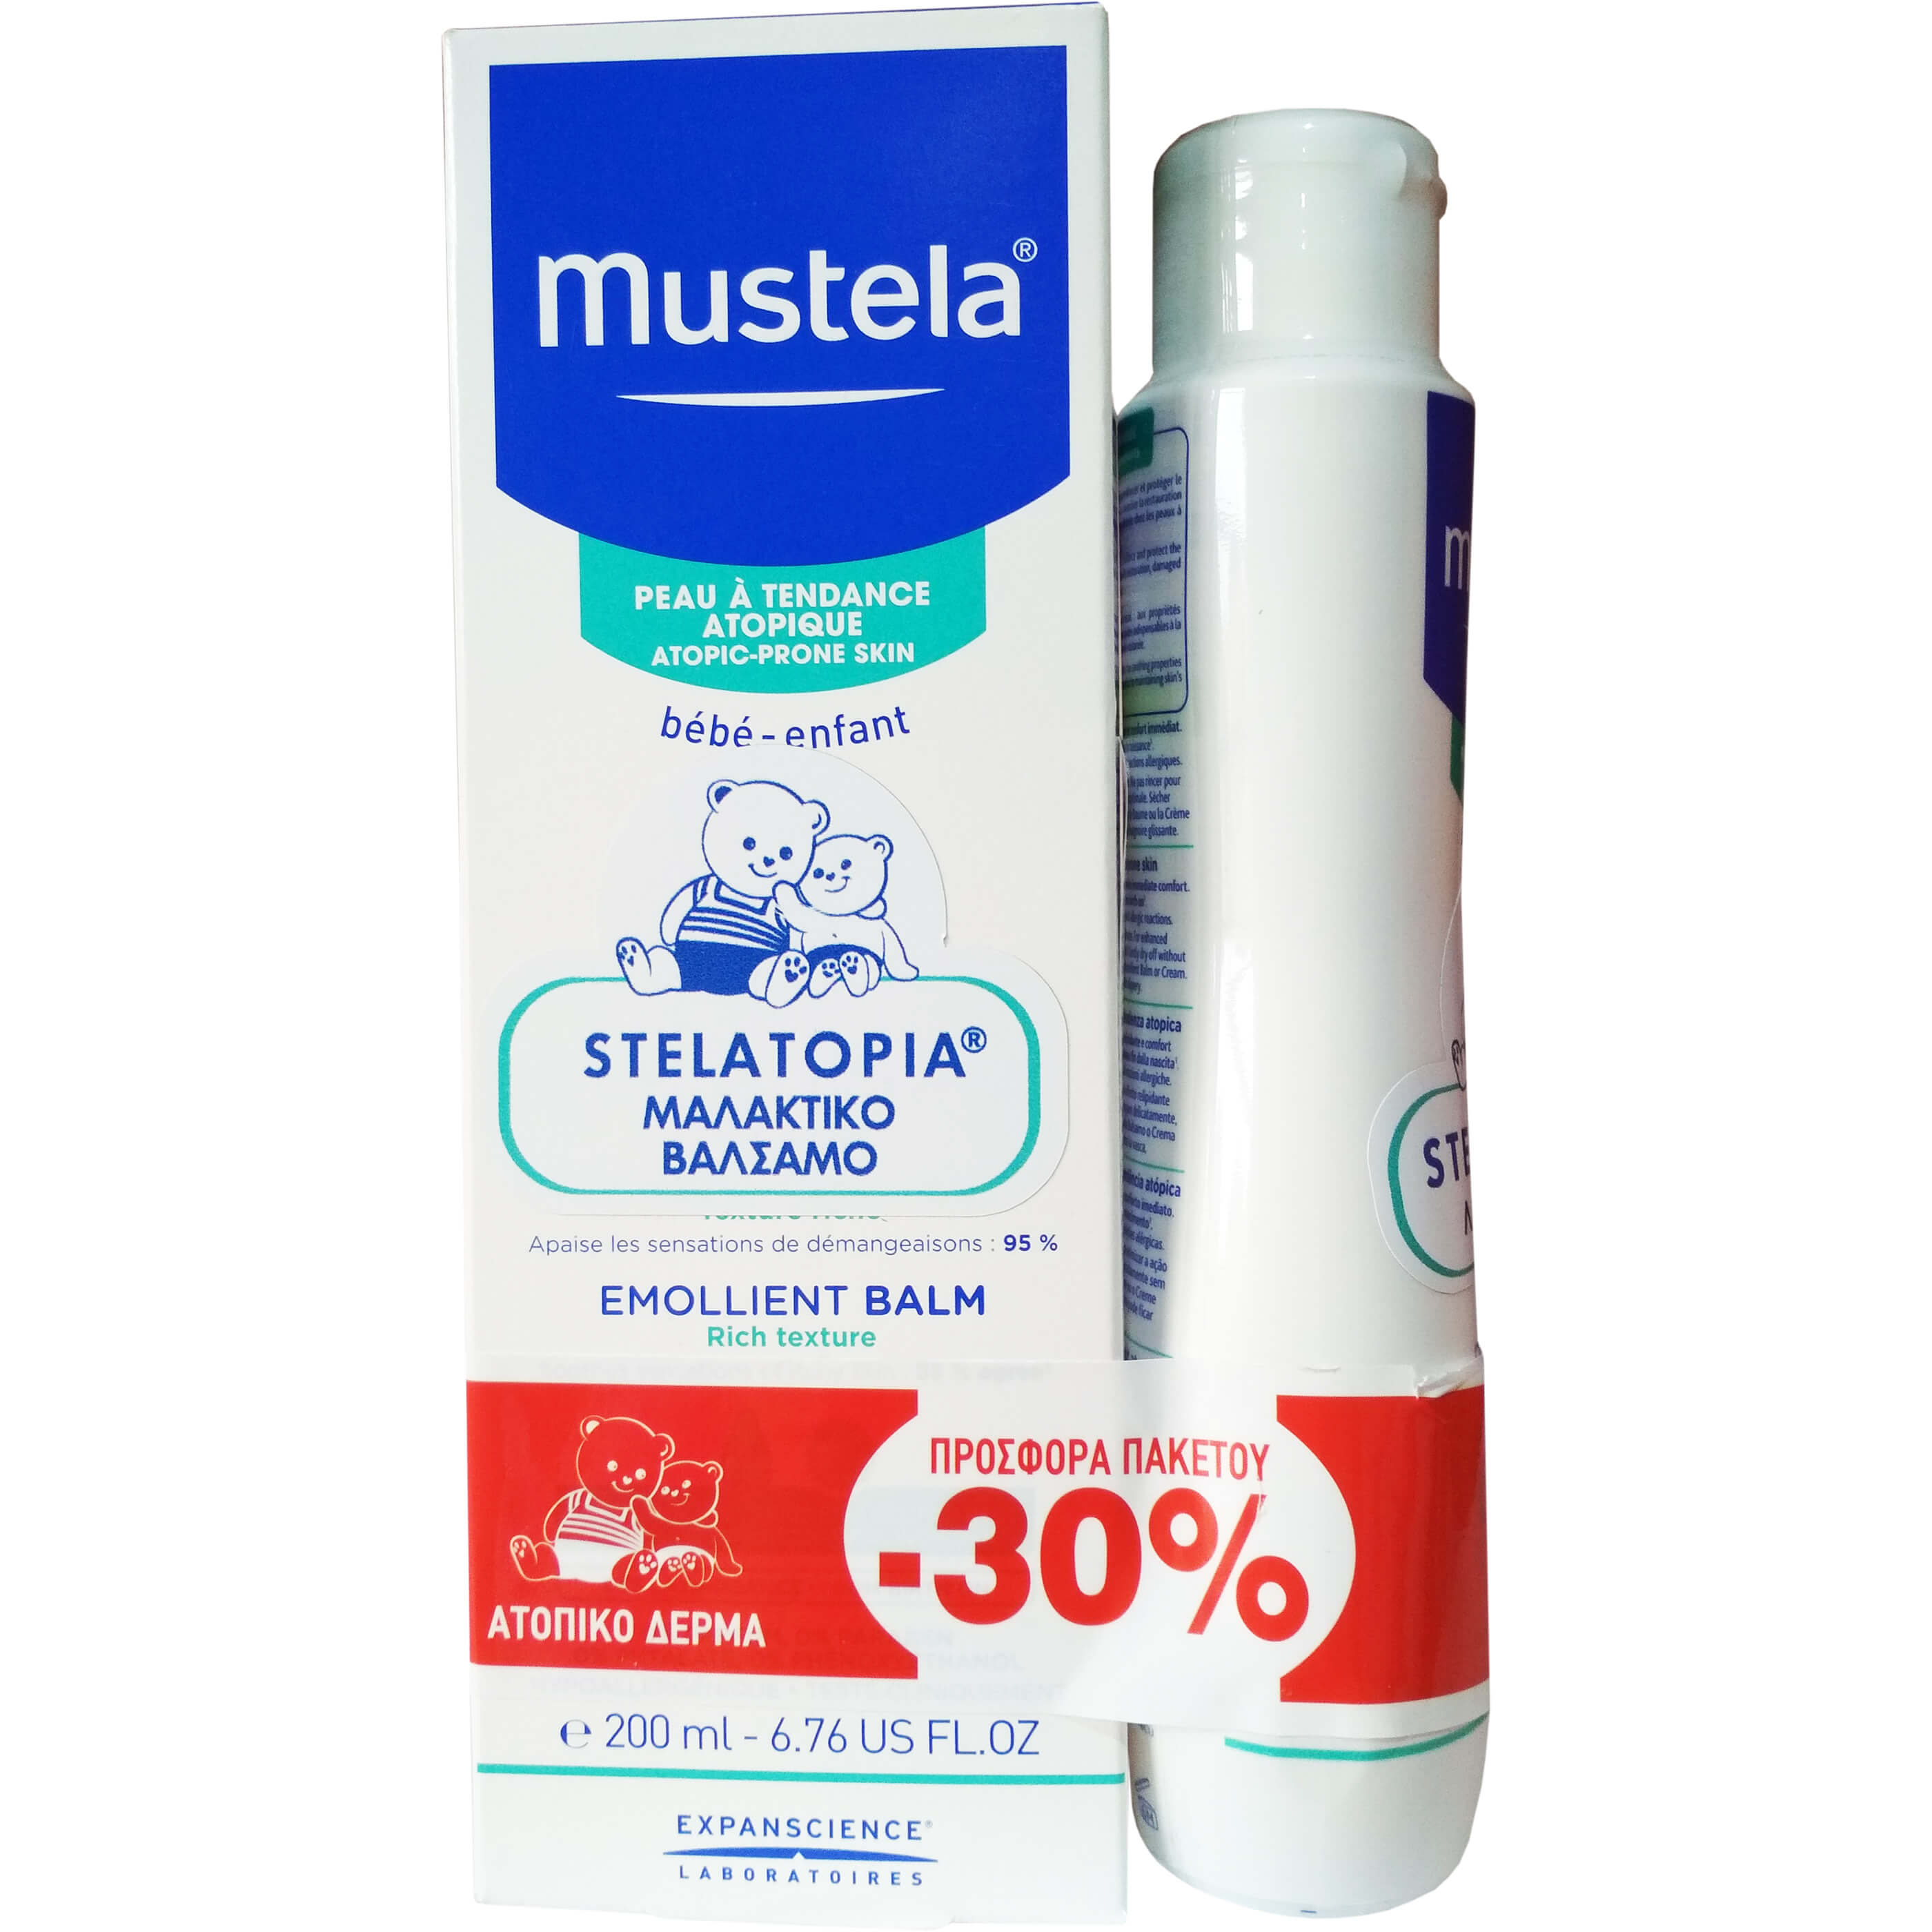 0fa86985fb3 pharm24 Mustela Πακέτο Προσφοράς Stelatopia Atopic Skin Emollient Balm  200ml & Stelatopia Bath Oil 200ml Promo -